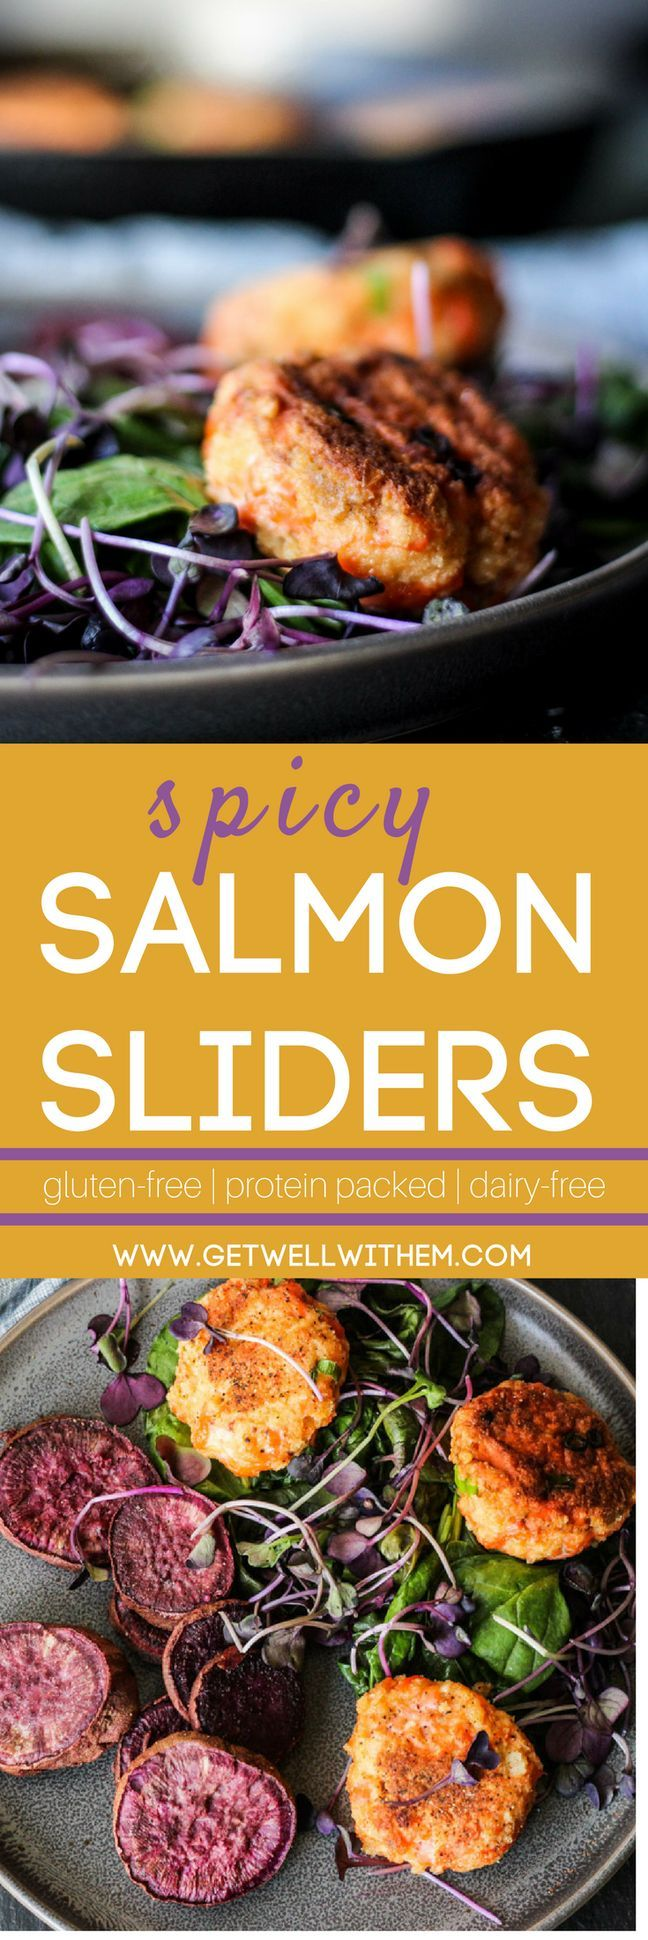 These spicy salmon sliders with ginger, chili pepper, and green onion are protein-packed, full of heart-healthy omega-3's, dairy-free, and depending on your bread crumbs, gluten free!